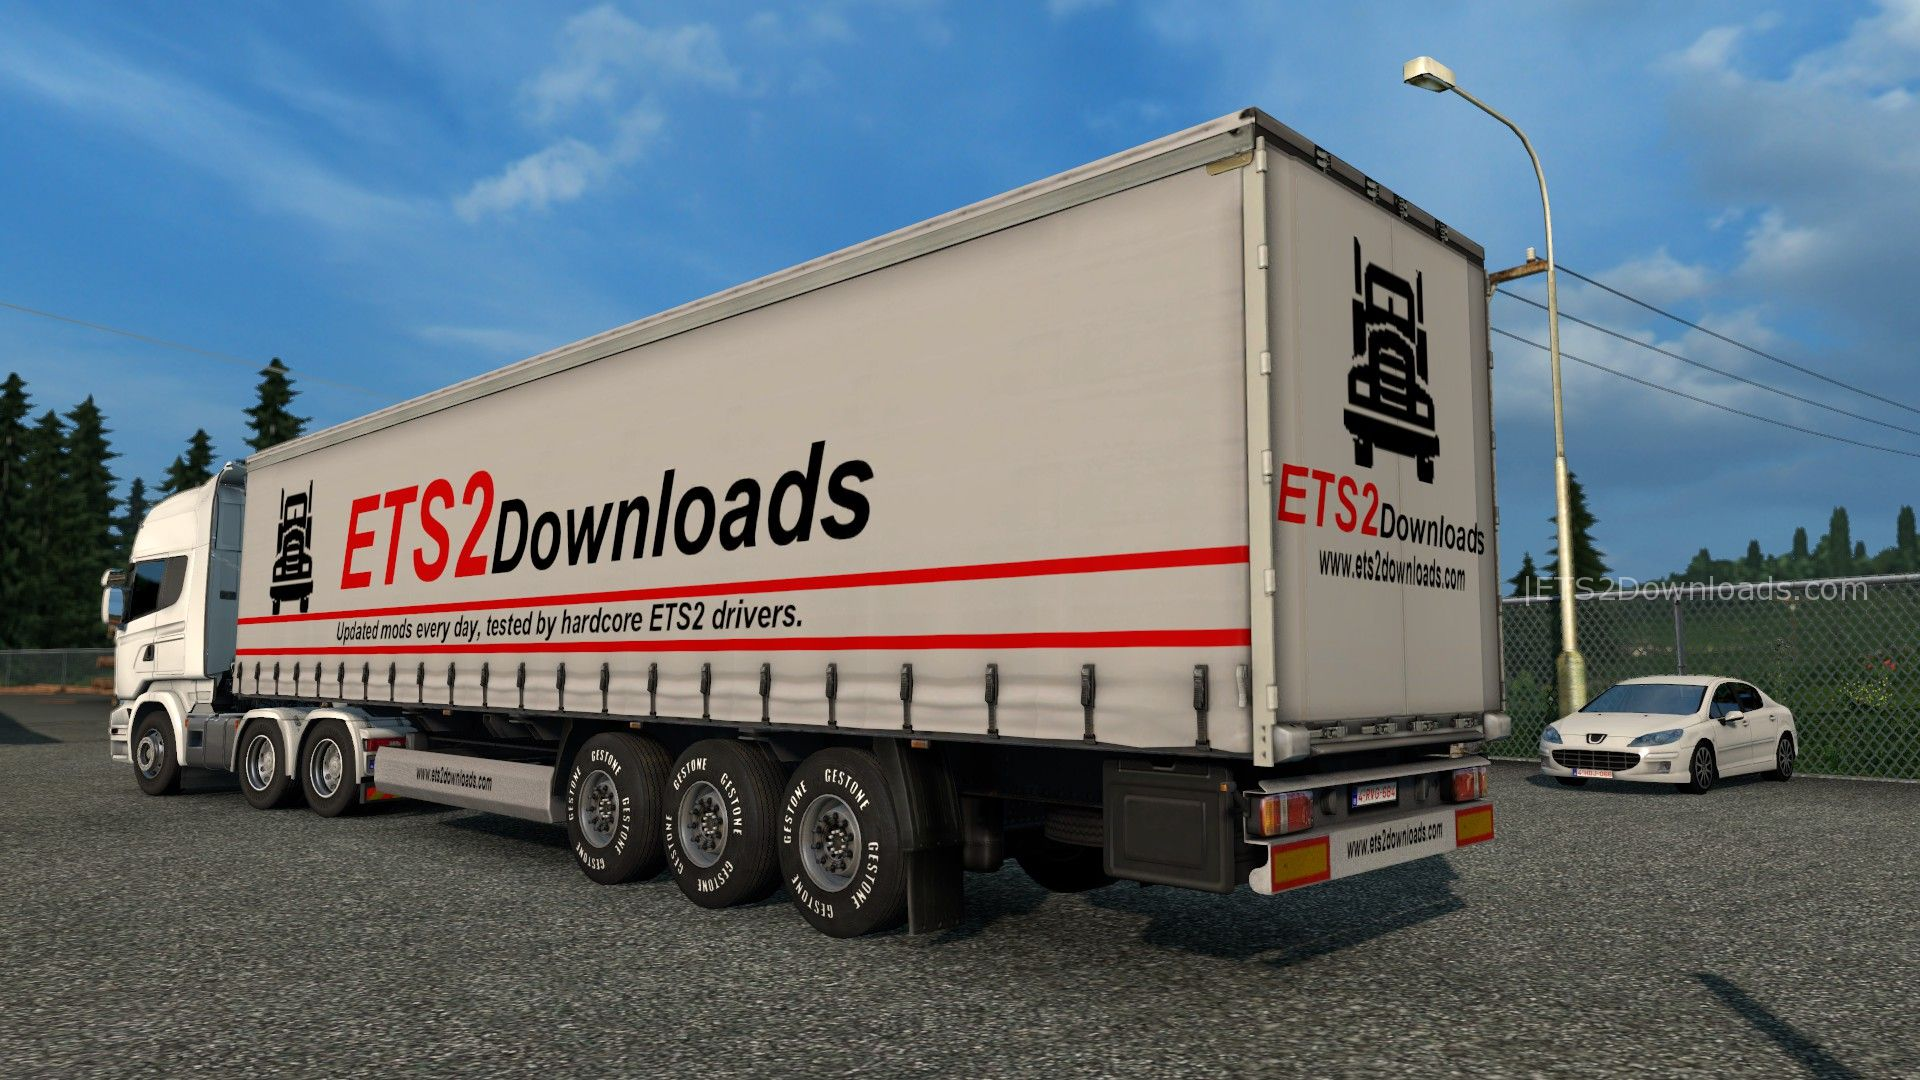 ets2downloads-trailer-2